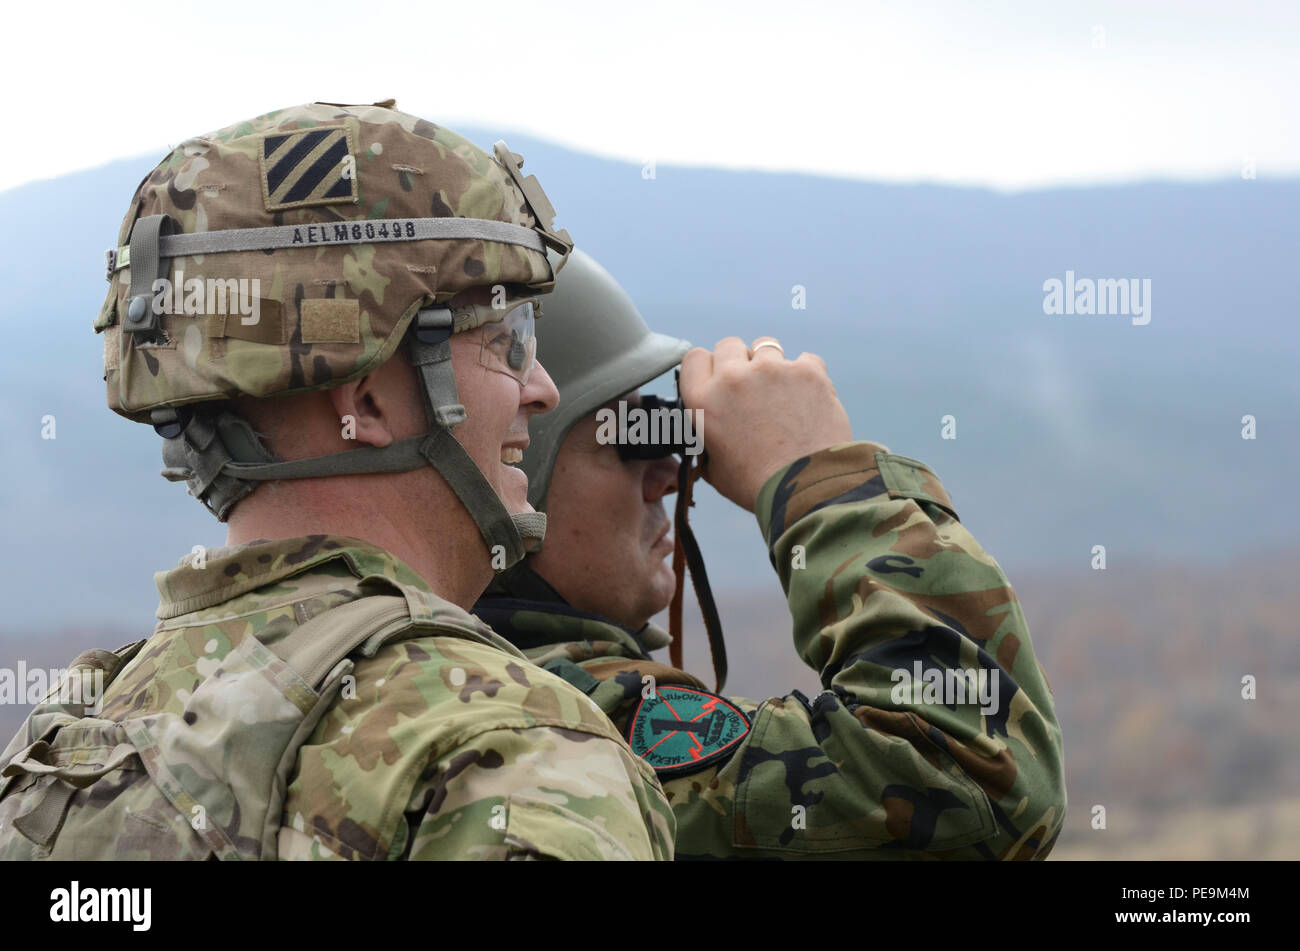 U.S. Army Lt. Col. Christopher S. Mahaffey, commander of 5th Squadron, 7th Cavalry Regiment, 3rd Infantry Division, stationed at Fort Stewart, Ga., and Bulgarian Army Lt. Col. Tzvetan, Kochankov, commander of 1-61st Mechanized Battalion, watch as U.S. and Bulgarian soldiers conduct tactical movements during Exercise Peace Sentinel at Novo Selo Training Center, Bulgaria, Nov. 24, 2015. (U.S. Army photo by Staff Sgt. Steven M. Colvin/Released) - Stock Image